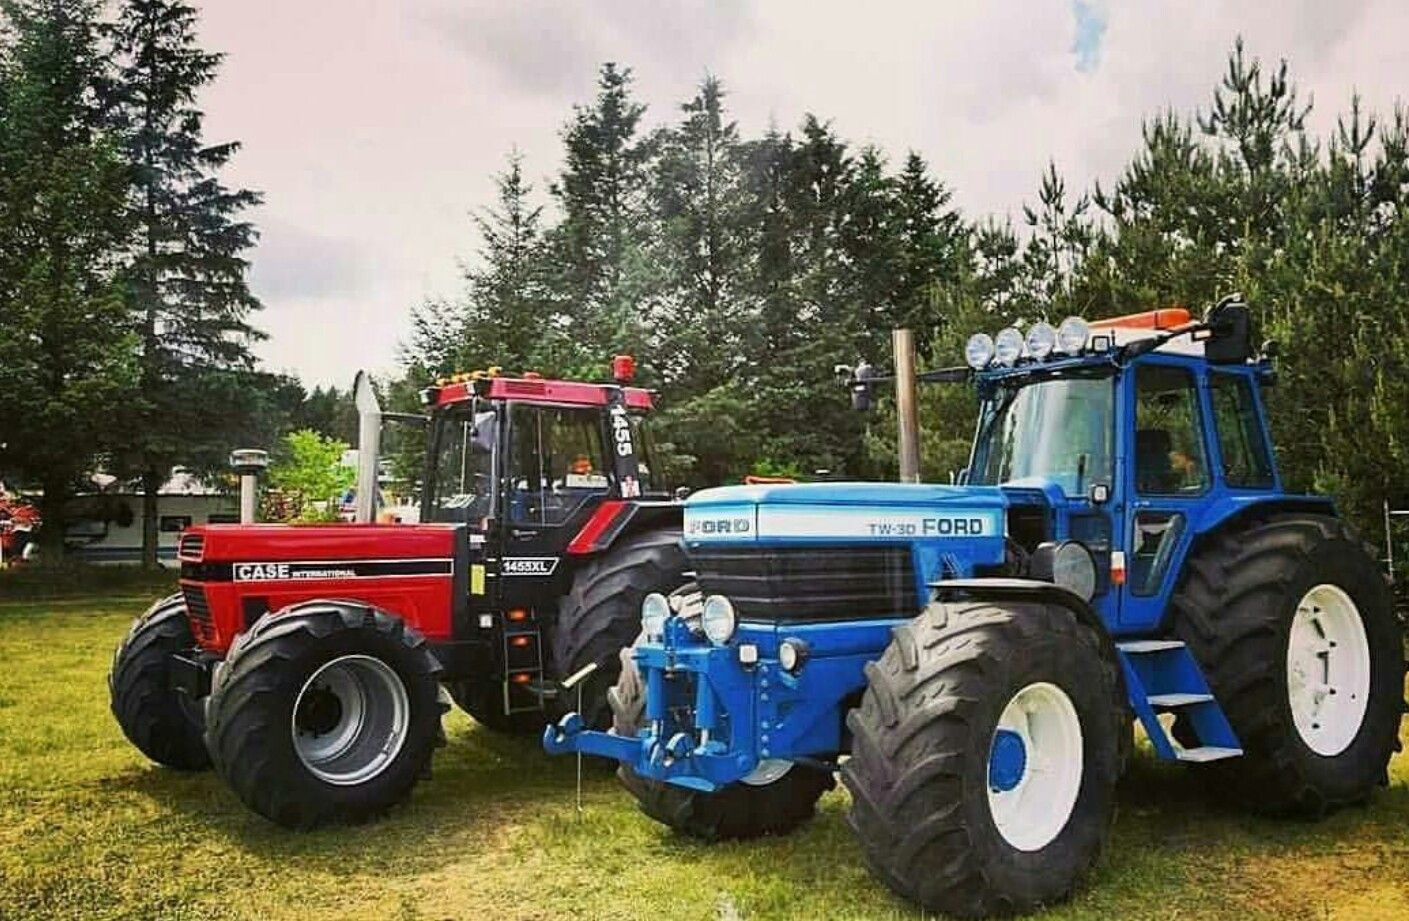 Ford Tw 30 And Case International 1455xl Tractors Ford Tractors Case Tractors